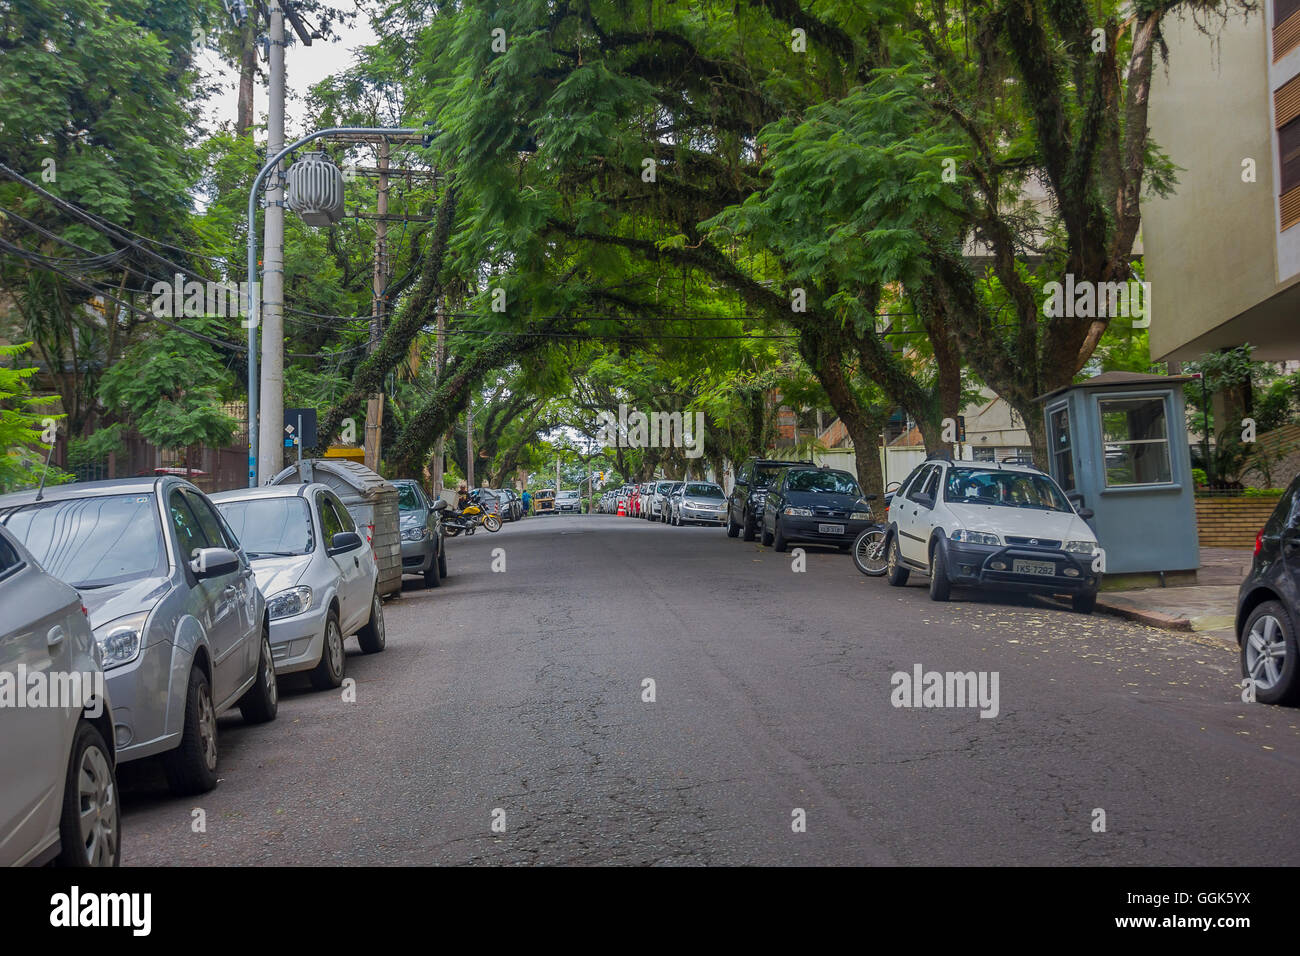 PORTO ALEGRE, BRAZIL - MAY 06, 2016: cars parked in the side of a nice street with trees in the sidewalks - Stock Image